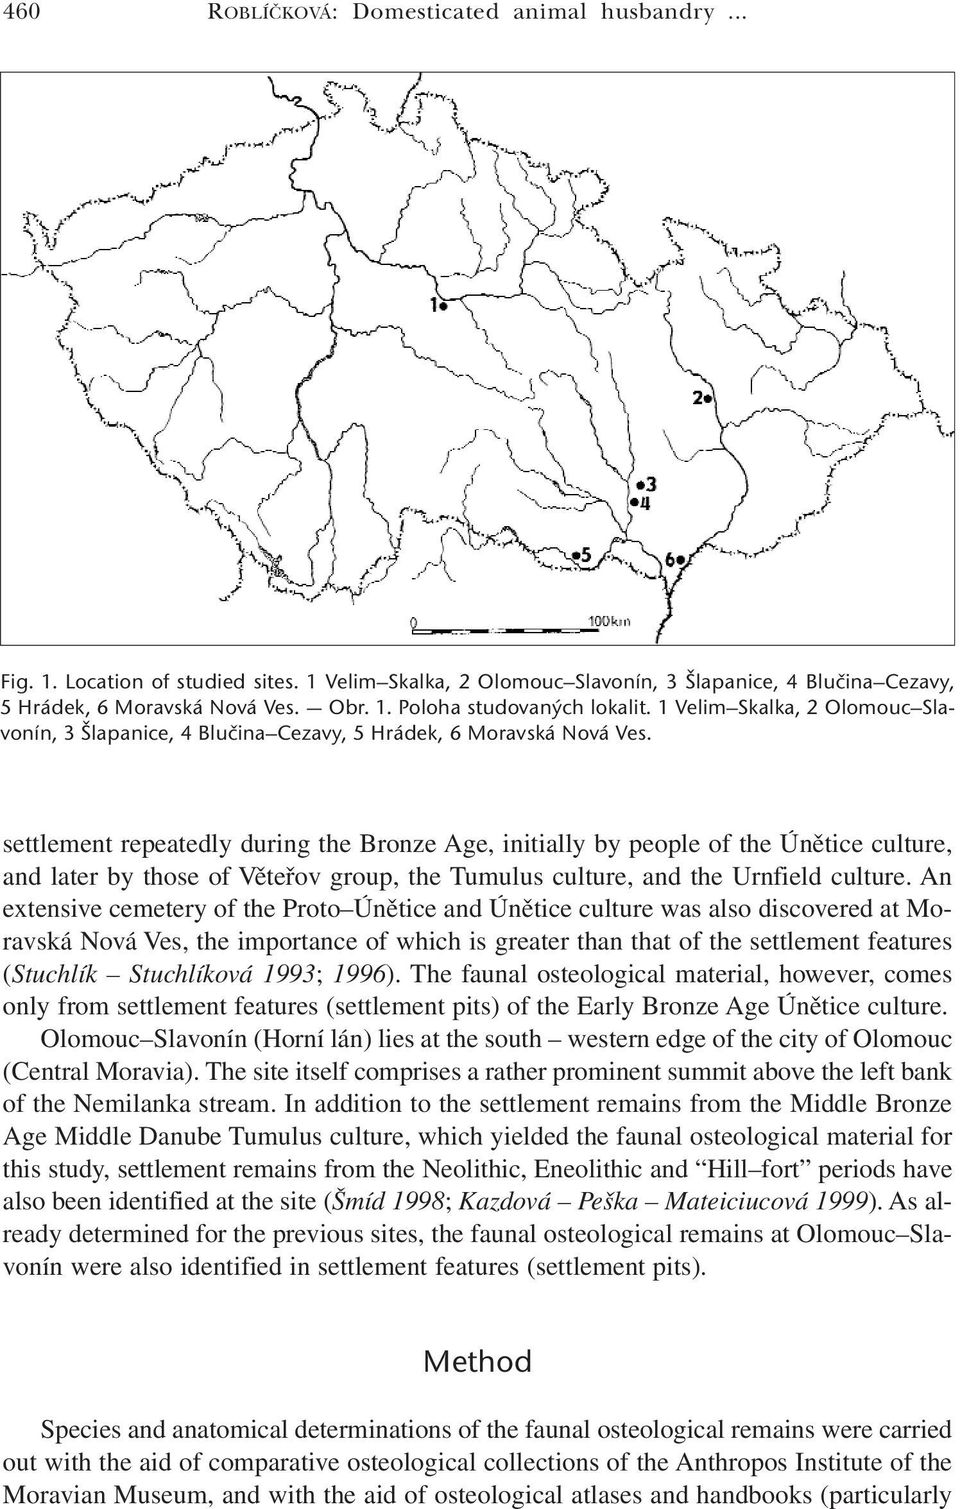 settlement repeatedly during the Bronze Age, initially by people of the Únětice culture, and later by those of Věteřov group, the Tumulus culture, and the Urnfield culture.